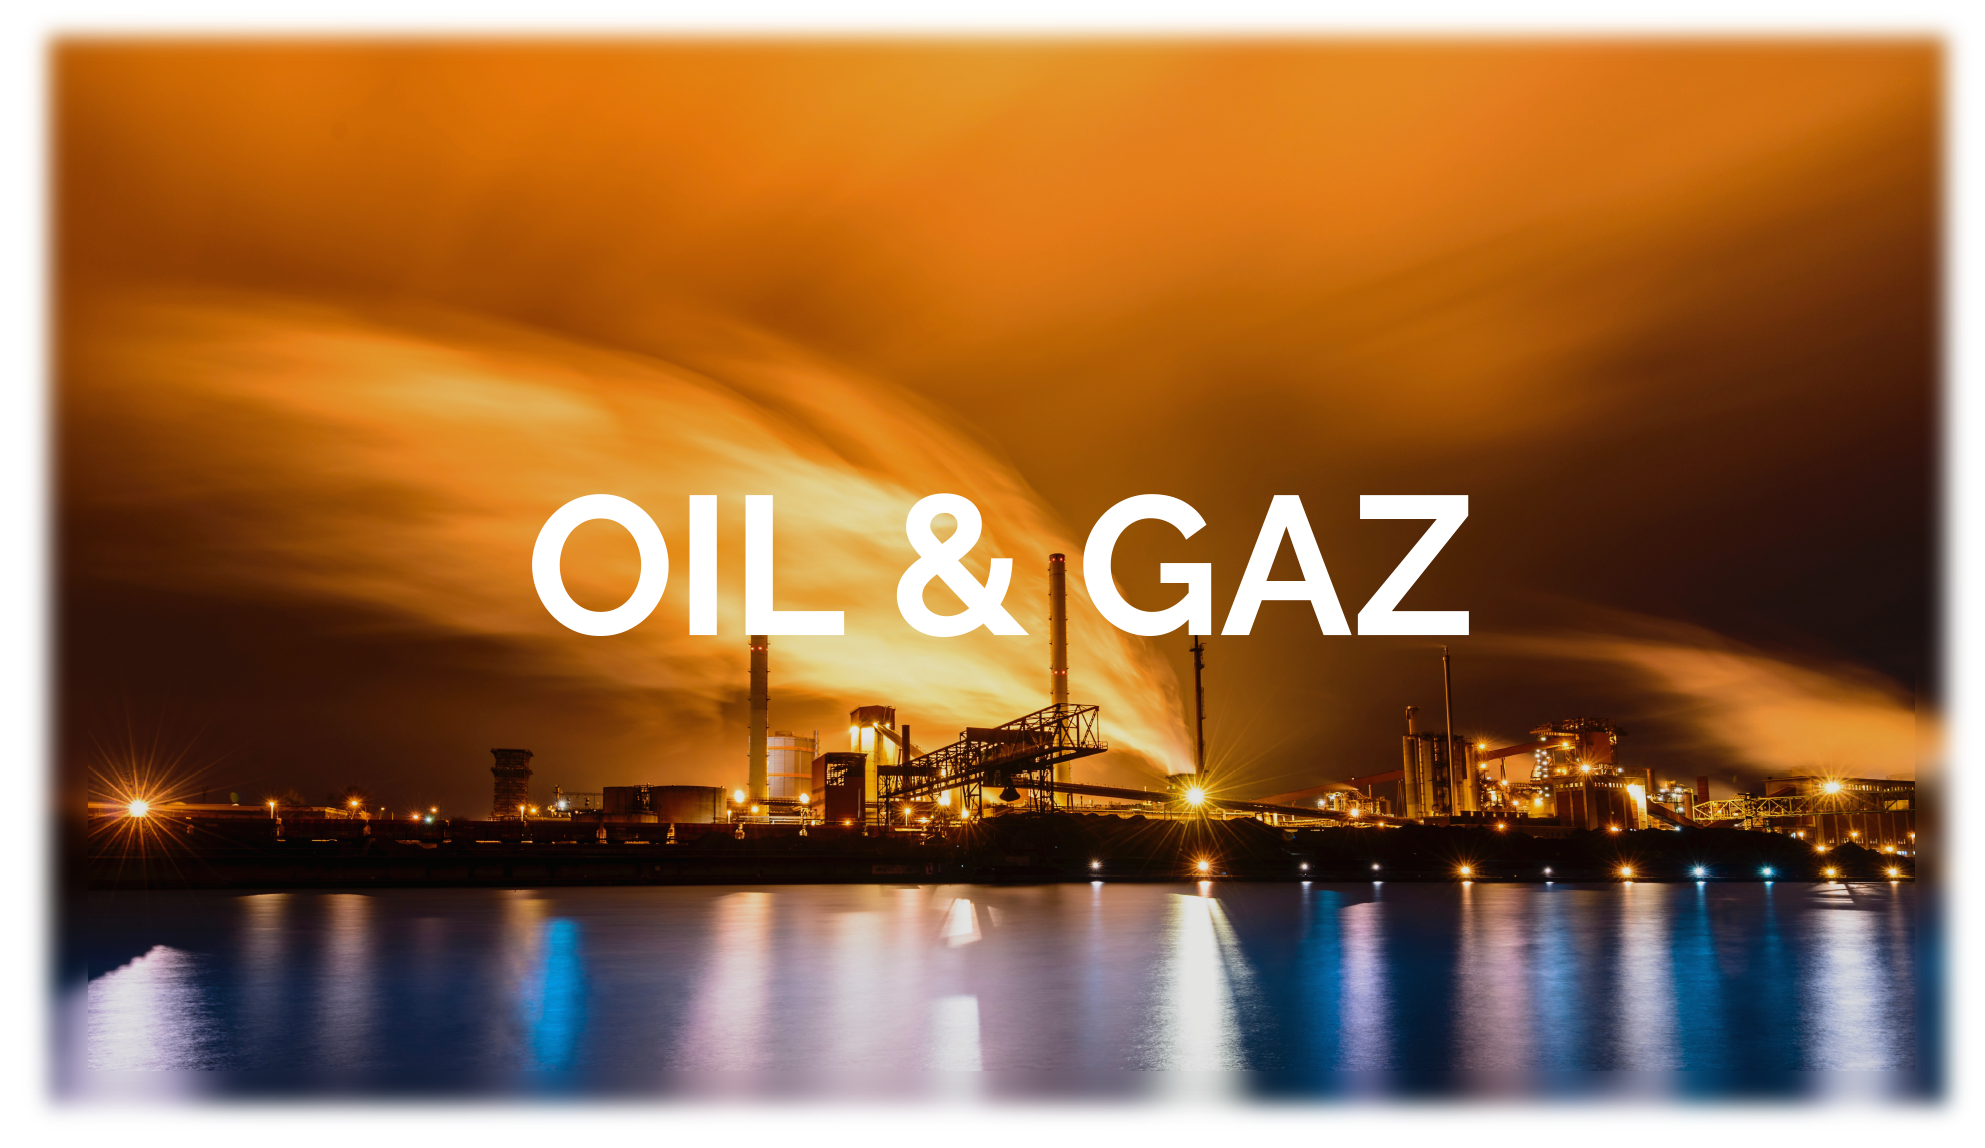 accueil-home-claimaway-litiges-claims-Dispute-Litigation-oil-ang-gaz-2